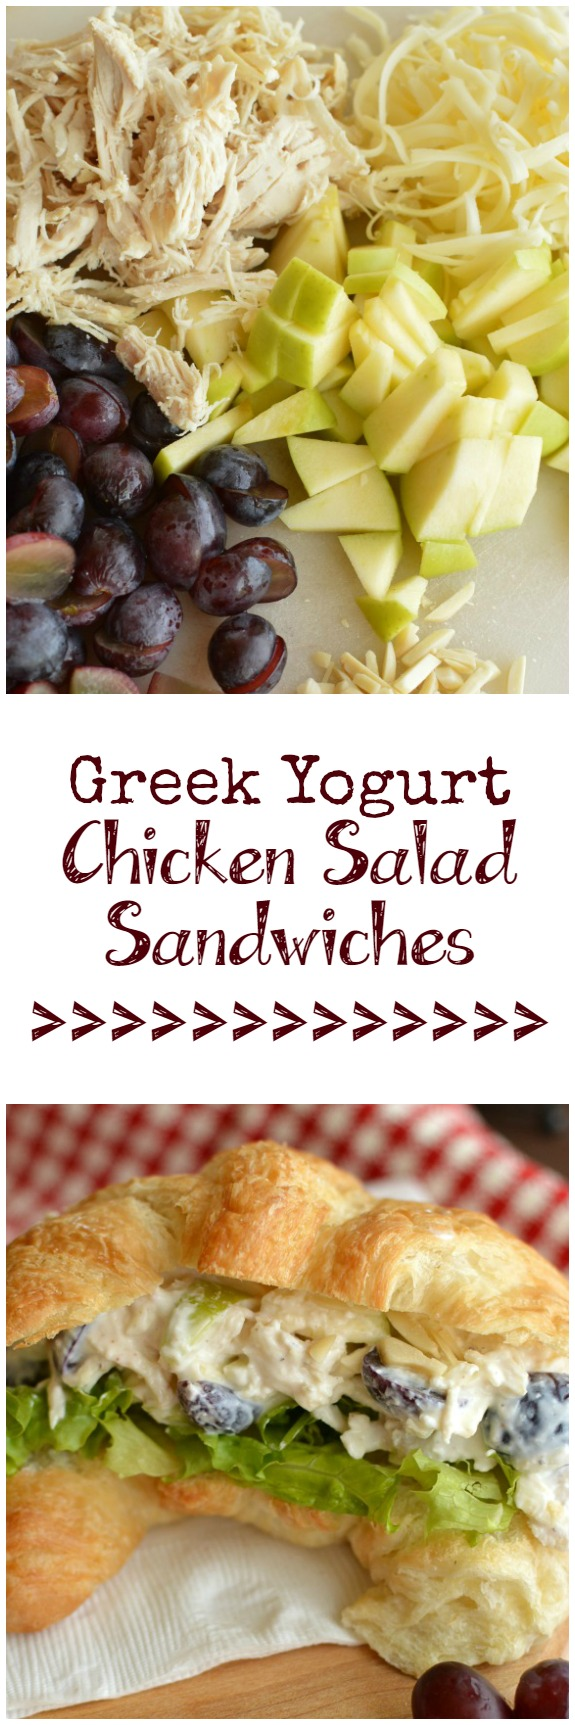 Greek Yogurt Chicken Salad Sandwiches, bursting with fruit, are my new favorite healthy meal! I switch the bread out and make it into a lettuce wrap! Yum! Little Dairy on the Prairie